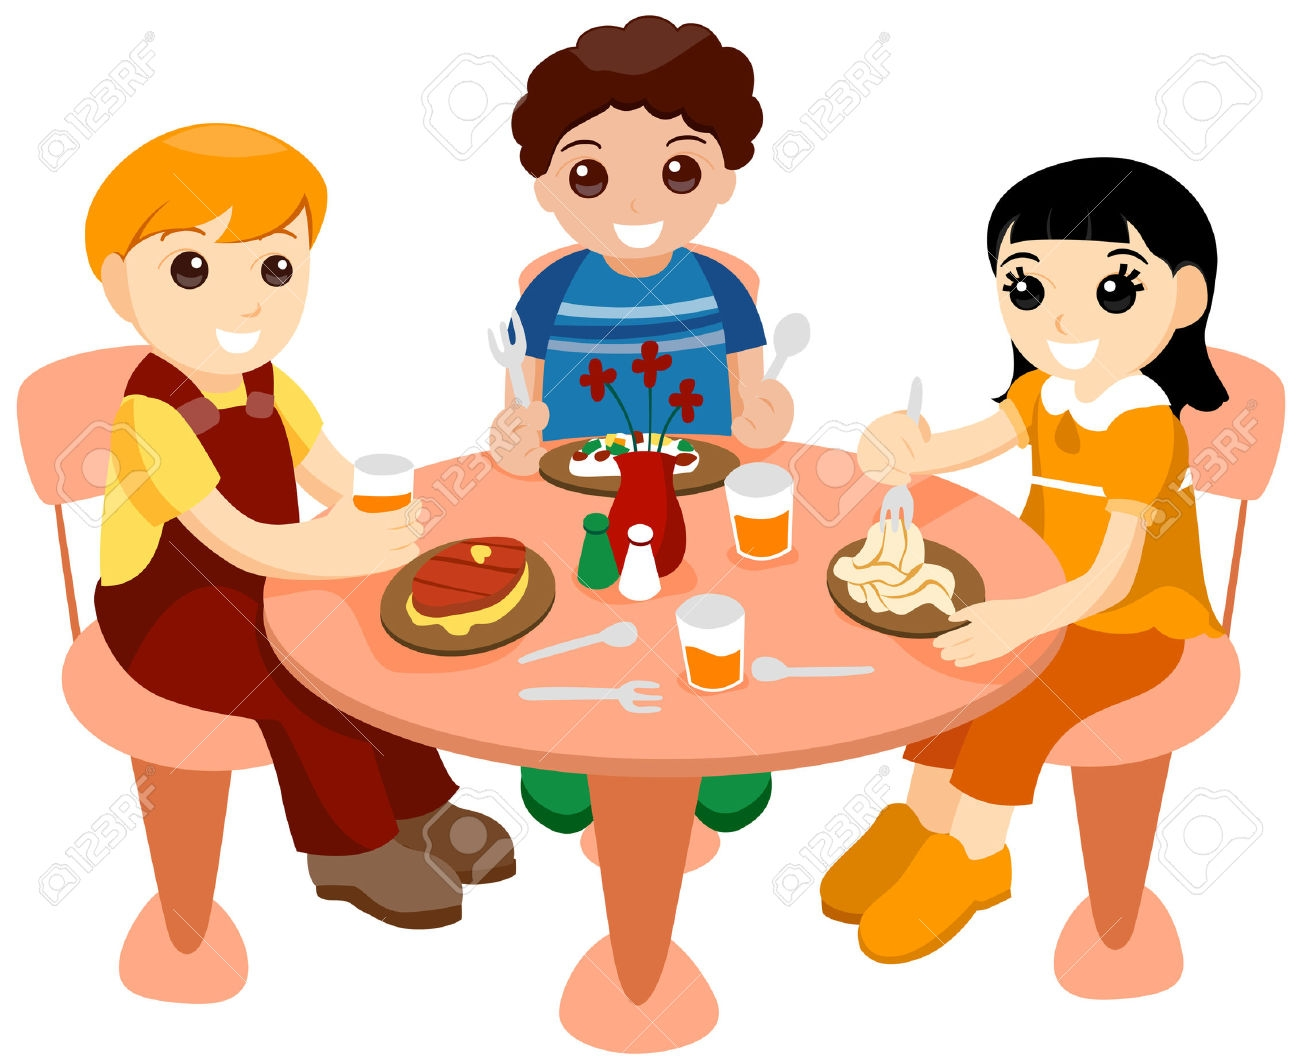 Diner clipart school dinner. Collection of free download